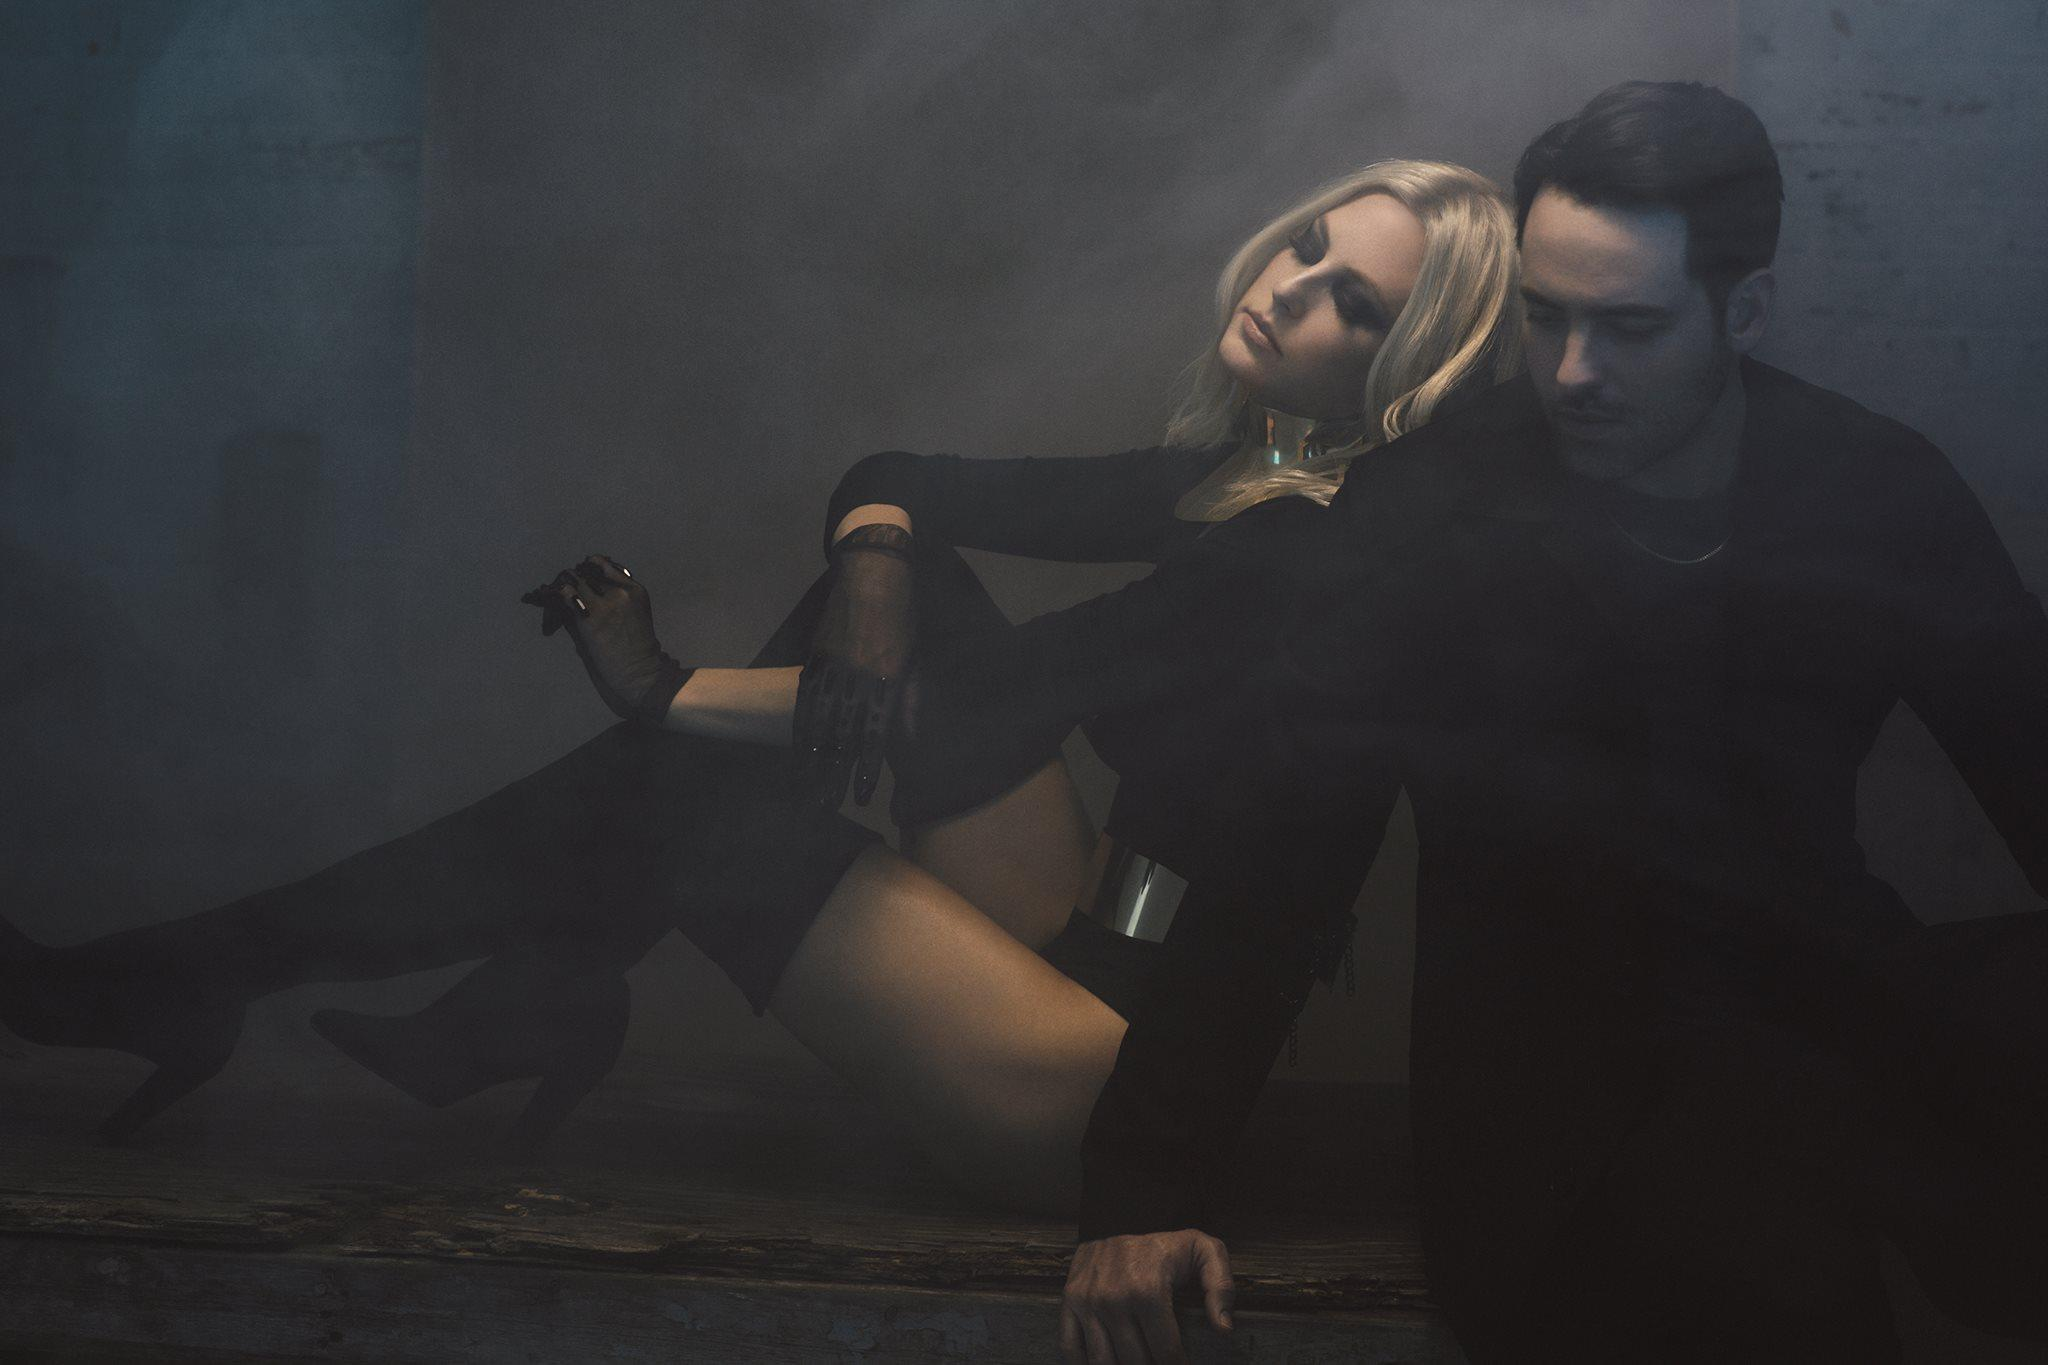 Phantogram share 'You Don't Get Me High Anymore' from new album 'Three'